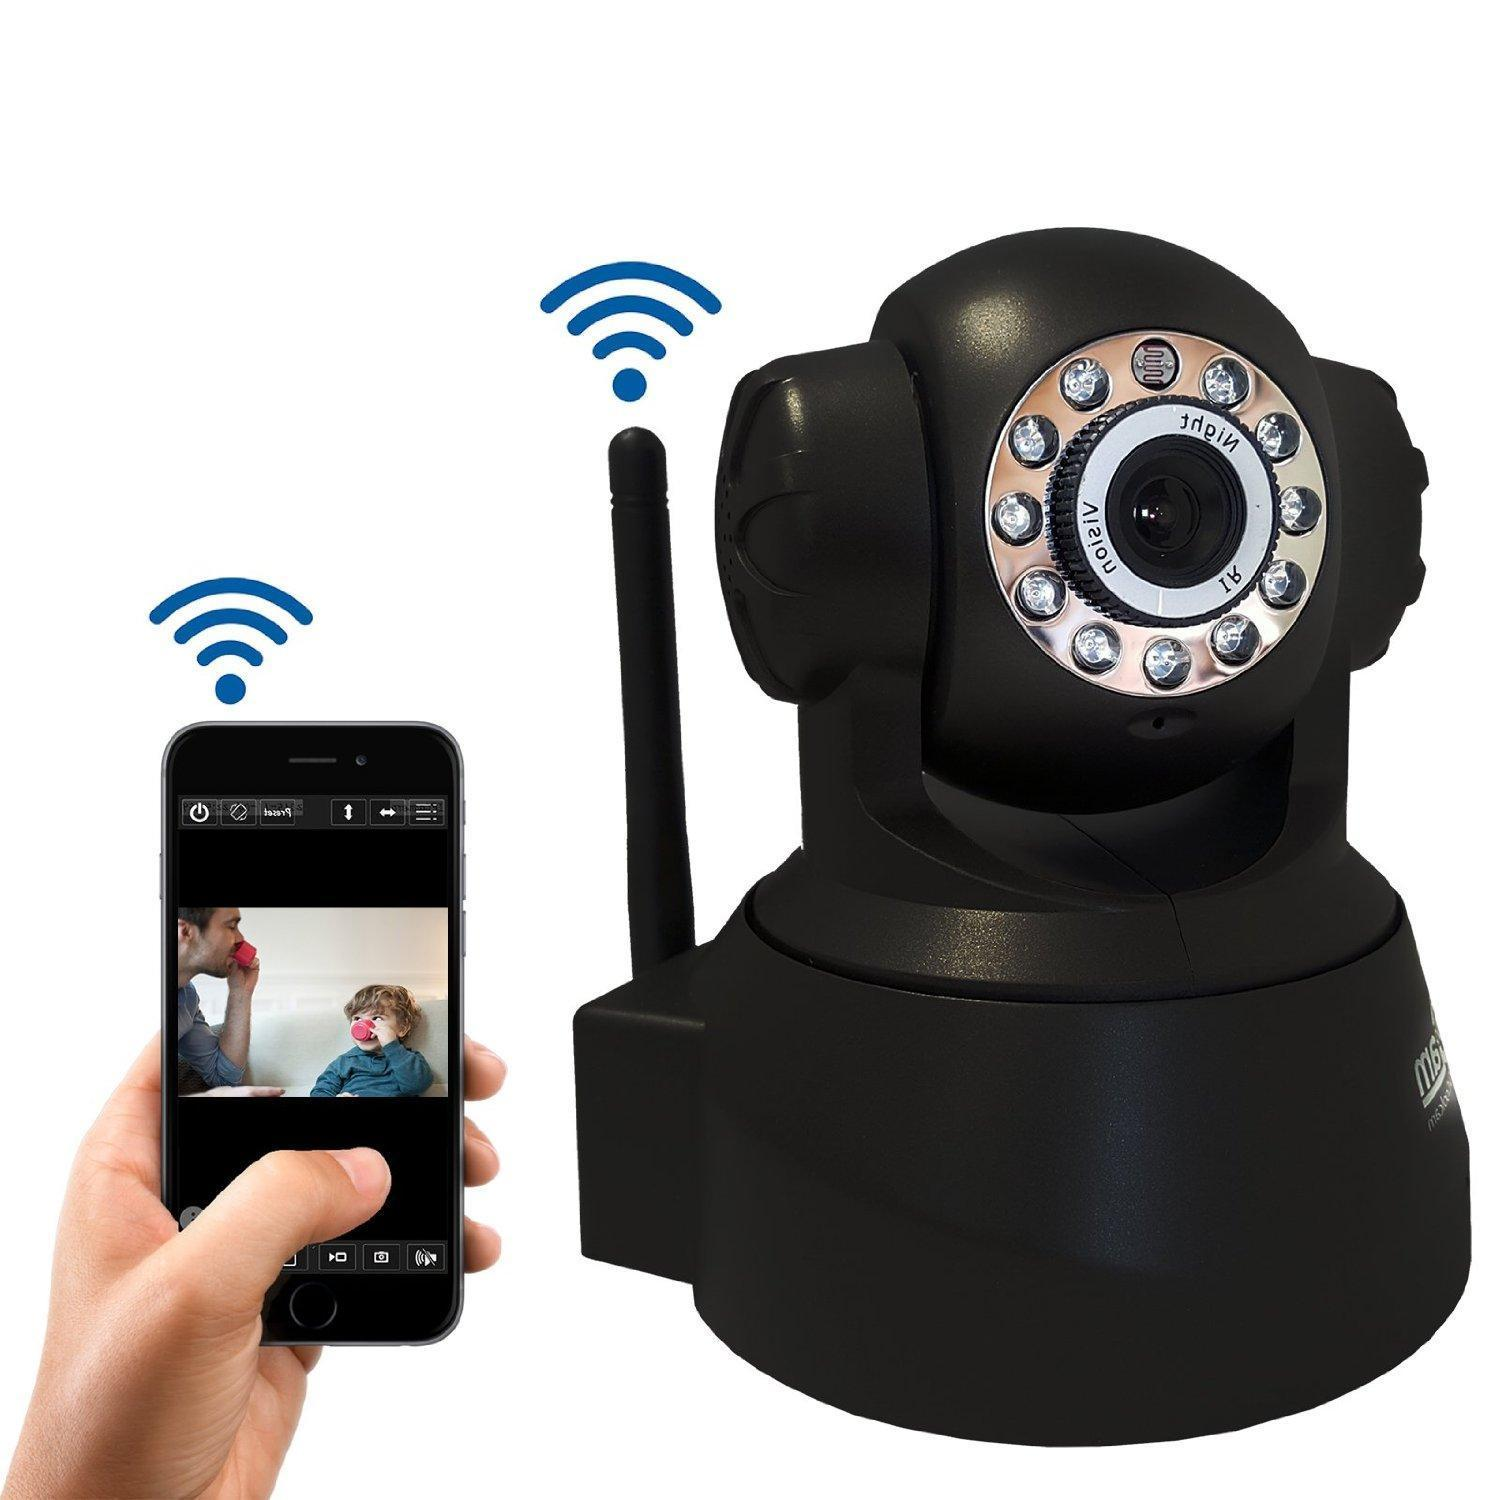 Cctv Camera Wifi Ip Camera Smartphone Cctv Security Surveillance ...